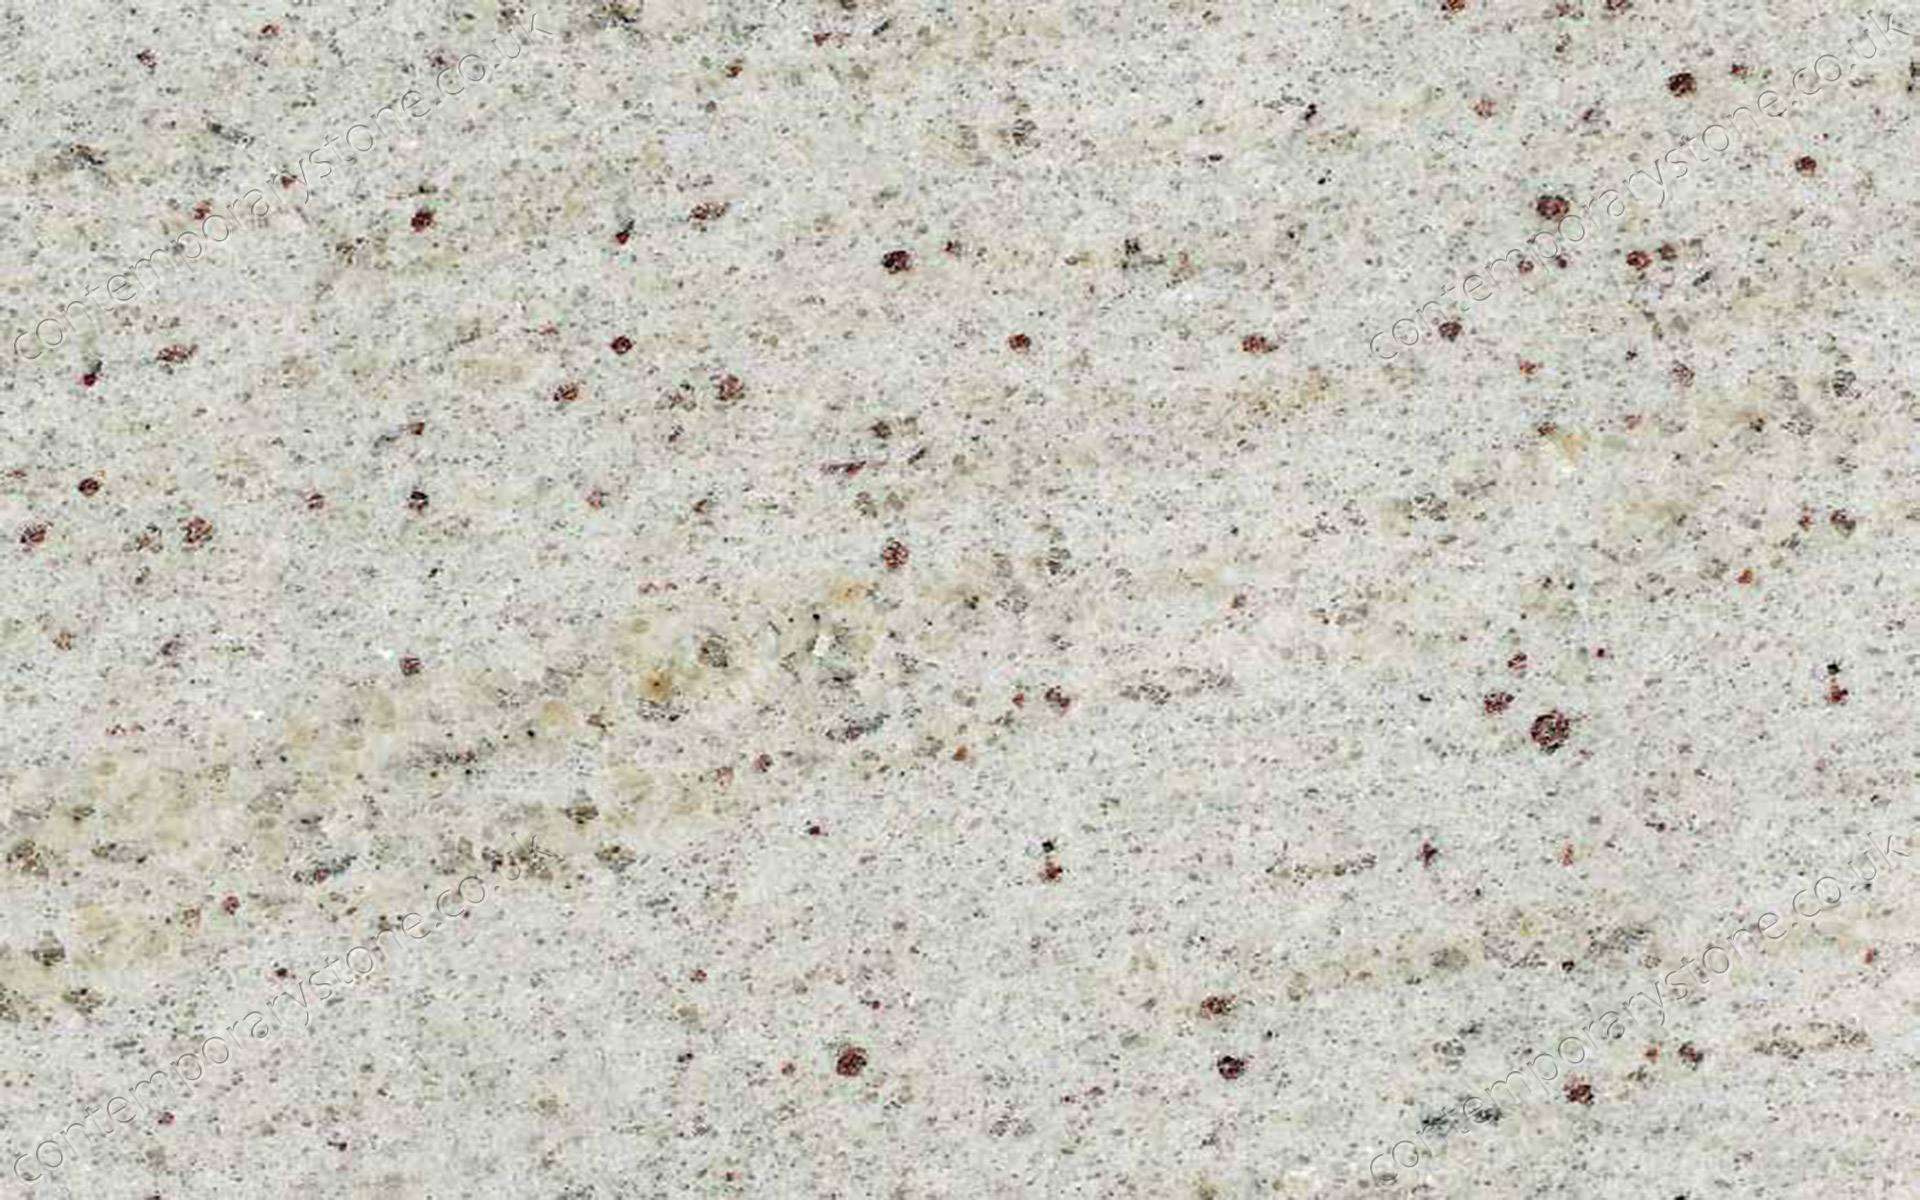 Kashmir White granite close-up